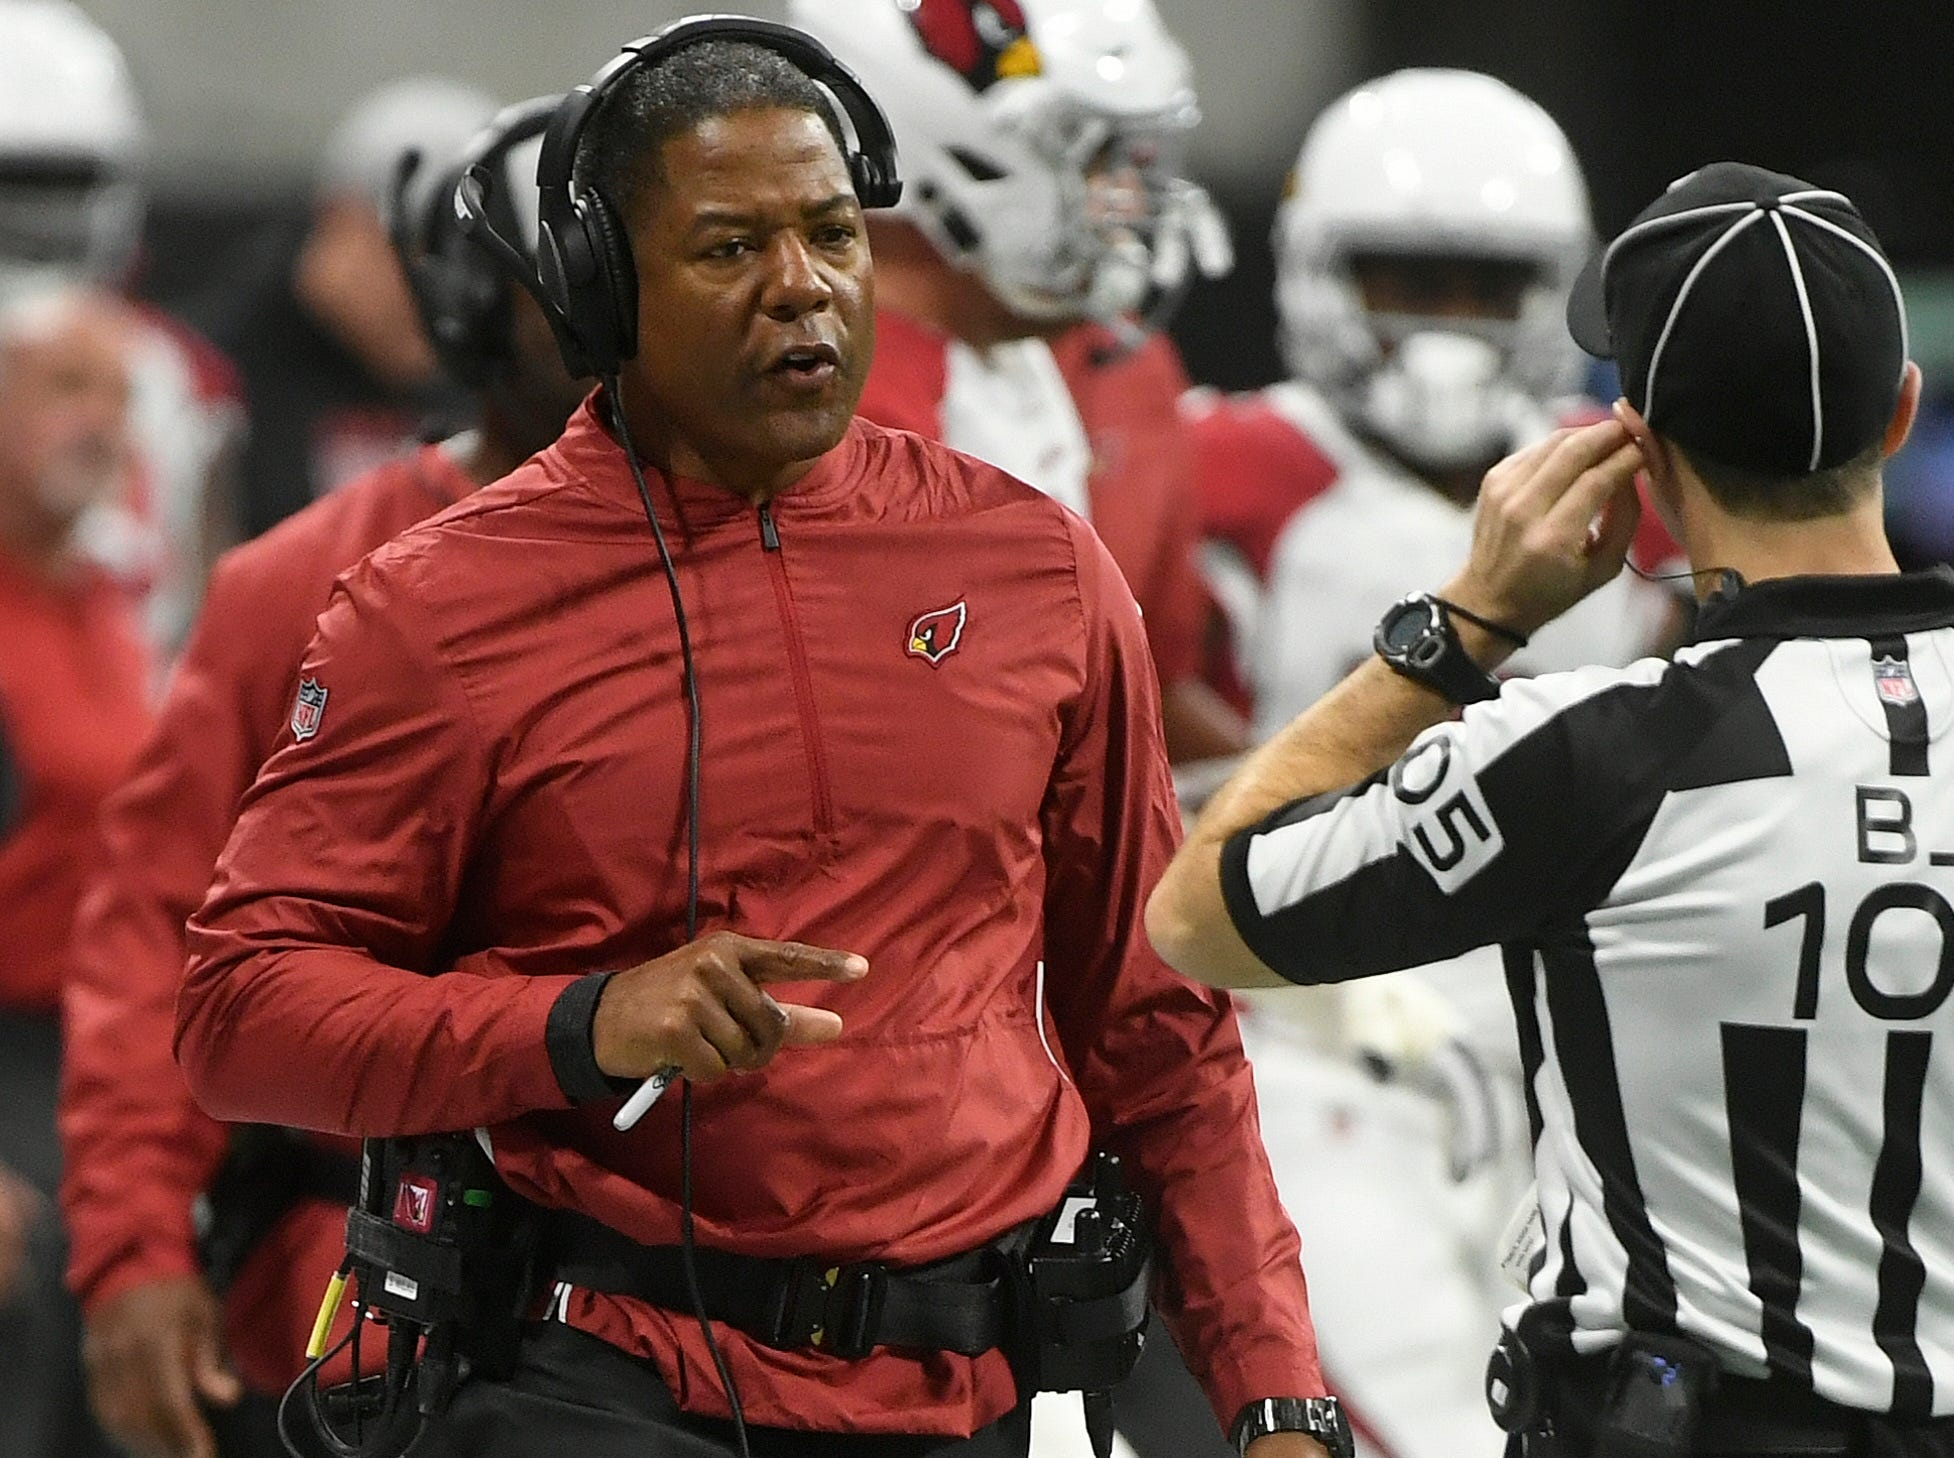 Arizona Cardinals head coach Steve Wilks speaks to field judge Rick Patterson (15) during the first half of an NFL football game between the Atlanta Falcons and the Arizona Cardinals, Sunday, Dec. 16, 2018, in Atlanta.